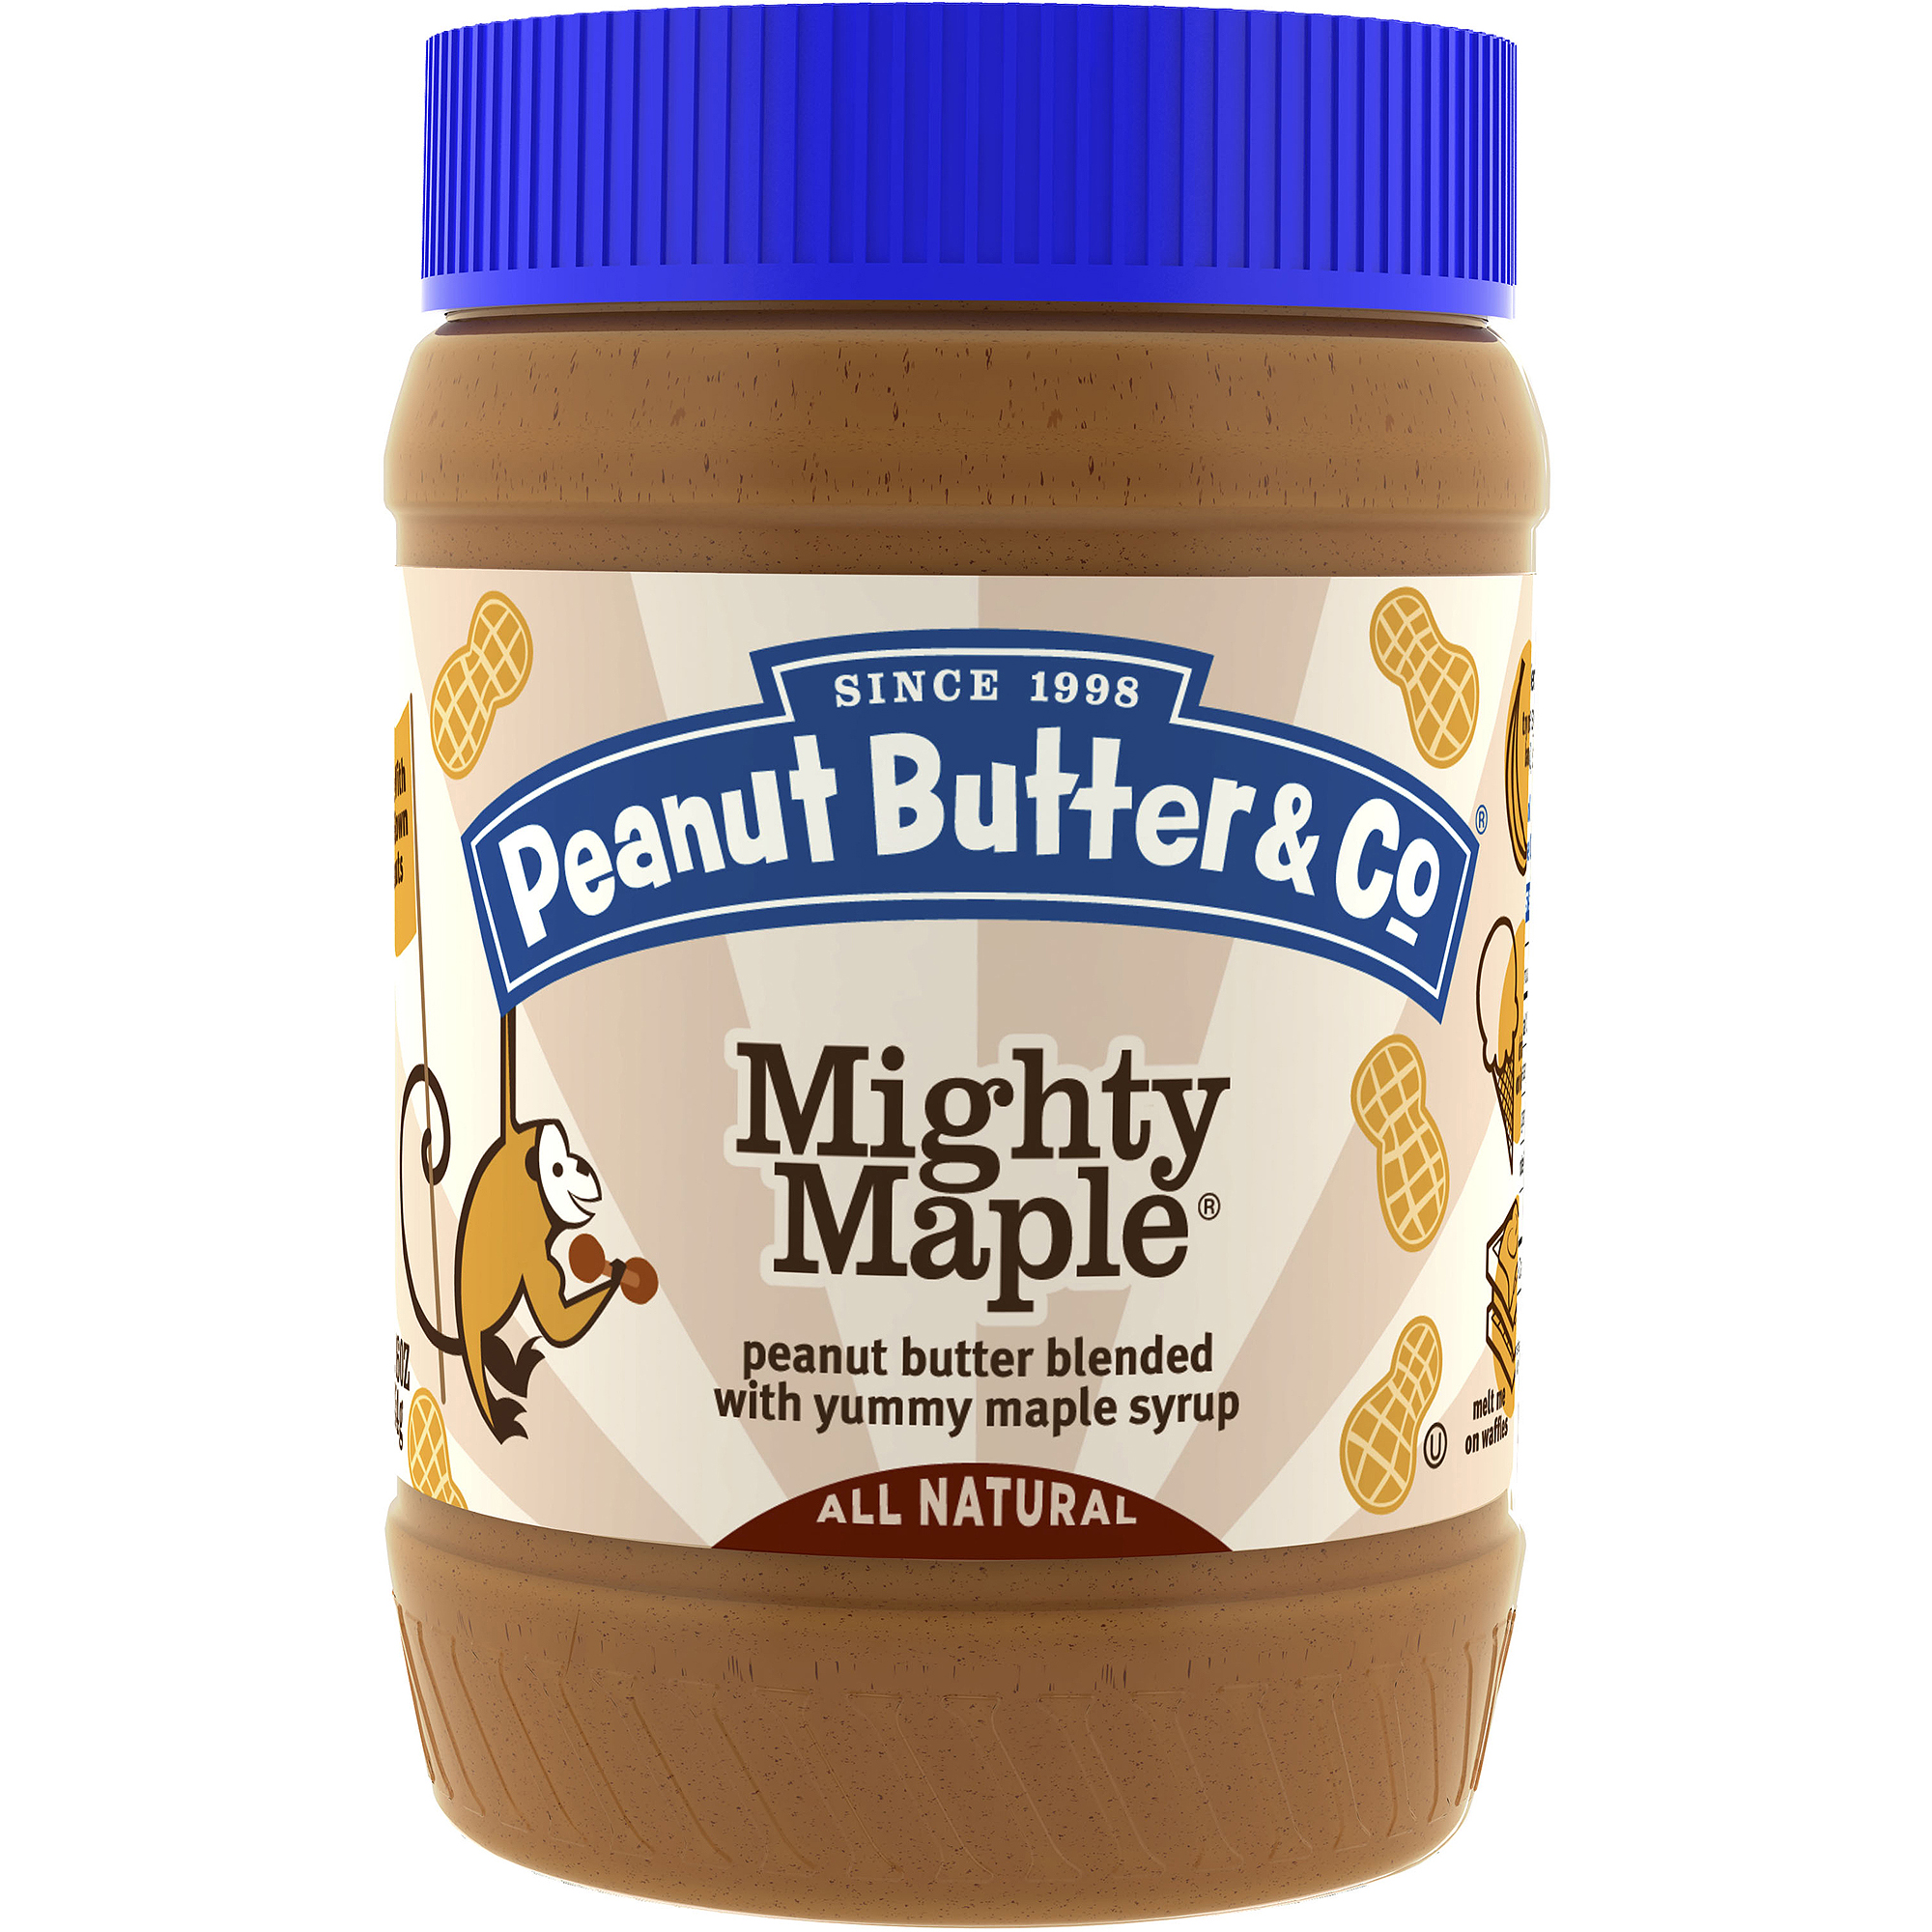 Peanut Butter & Co Peanut Butter, Mighty Maple